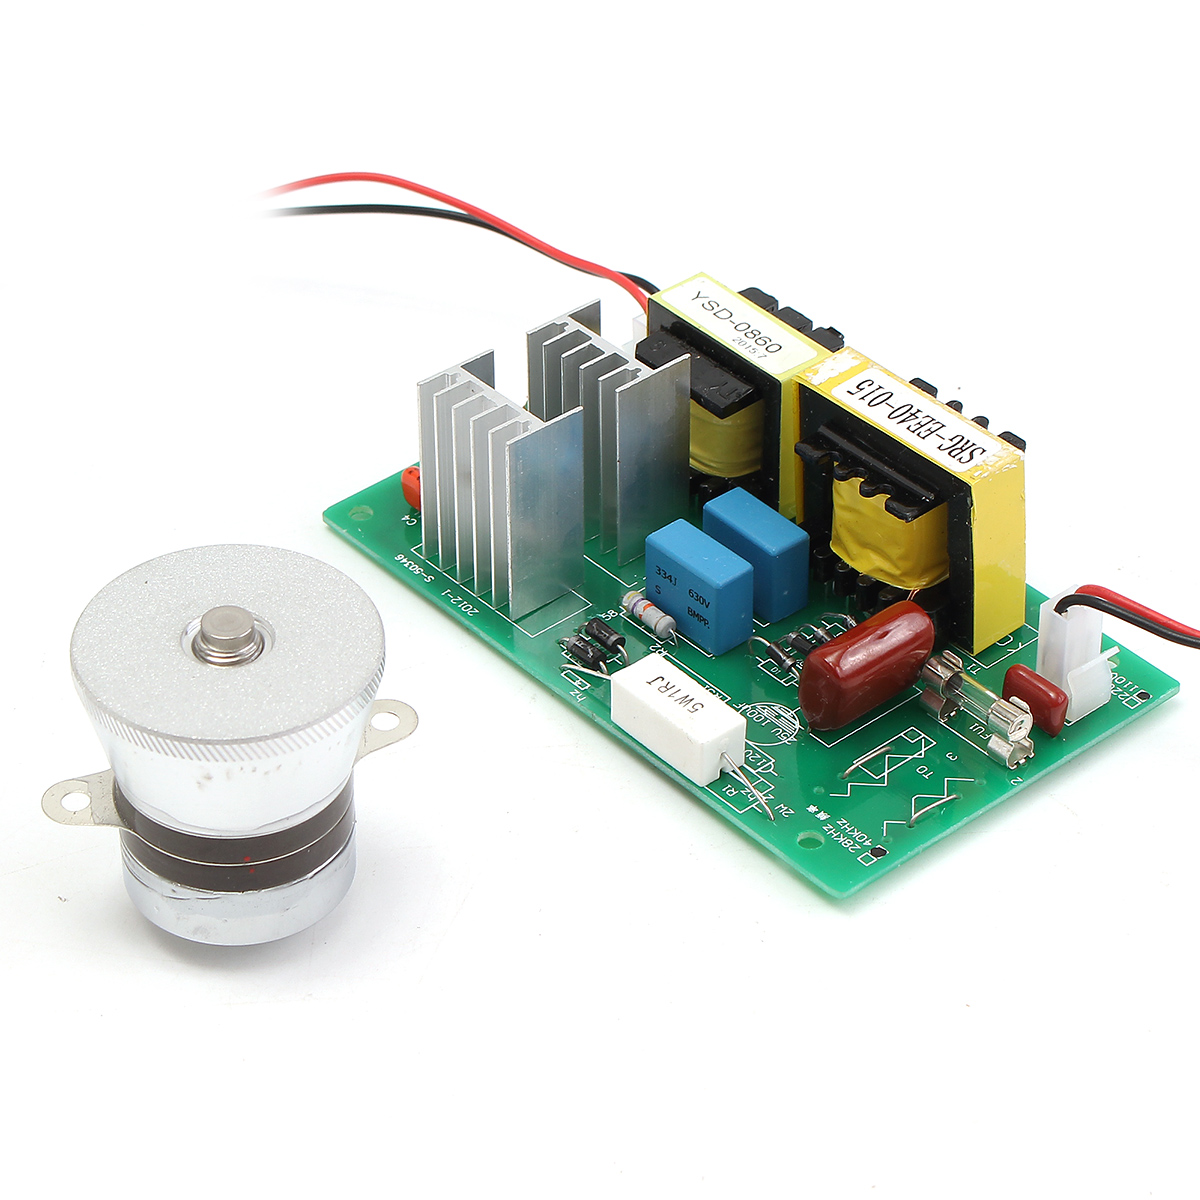 Ultrasonic Cleaning Transducer Cleaner 110VAC 50W 40KHz Power Driver Board Cleaning Transducer Ultrasonic Cleaner Parts